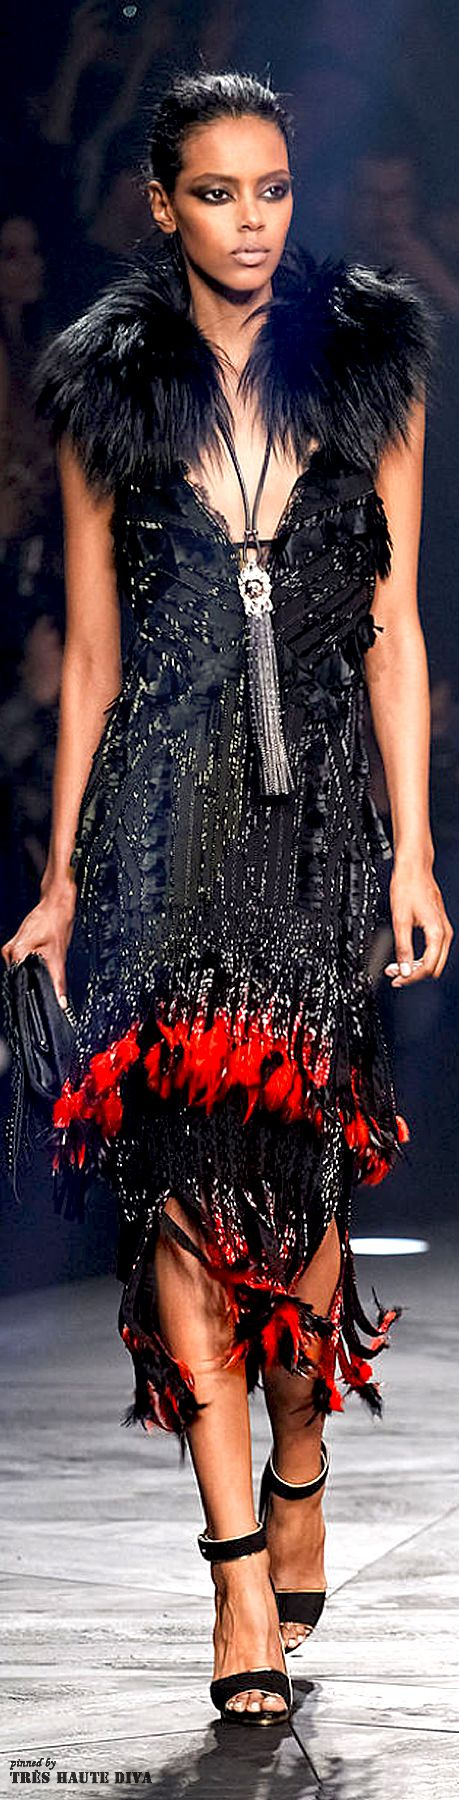 Milan Fashion Week Roberto #Cavalli Fall/Winter 2014 RTW